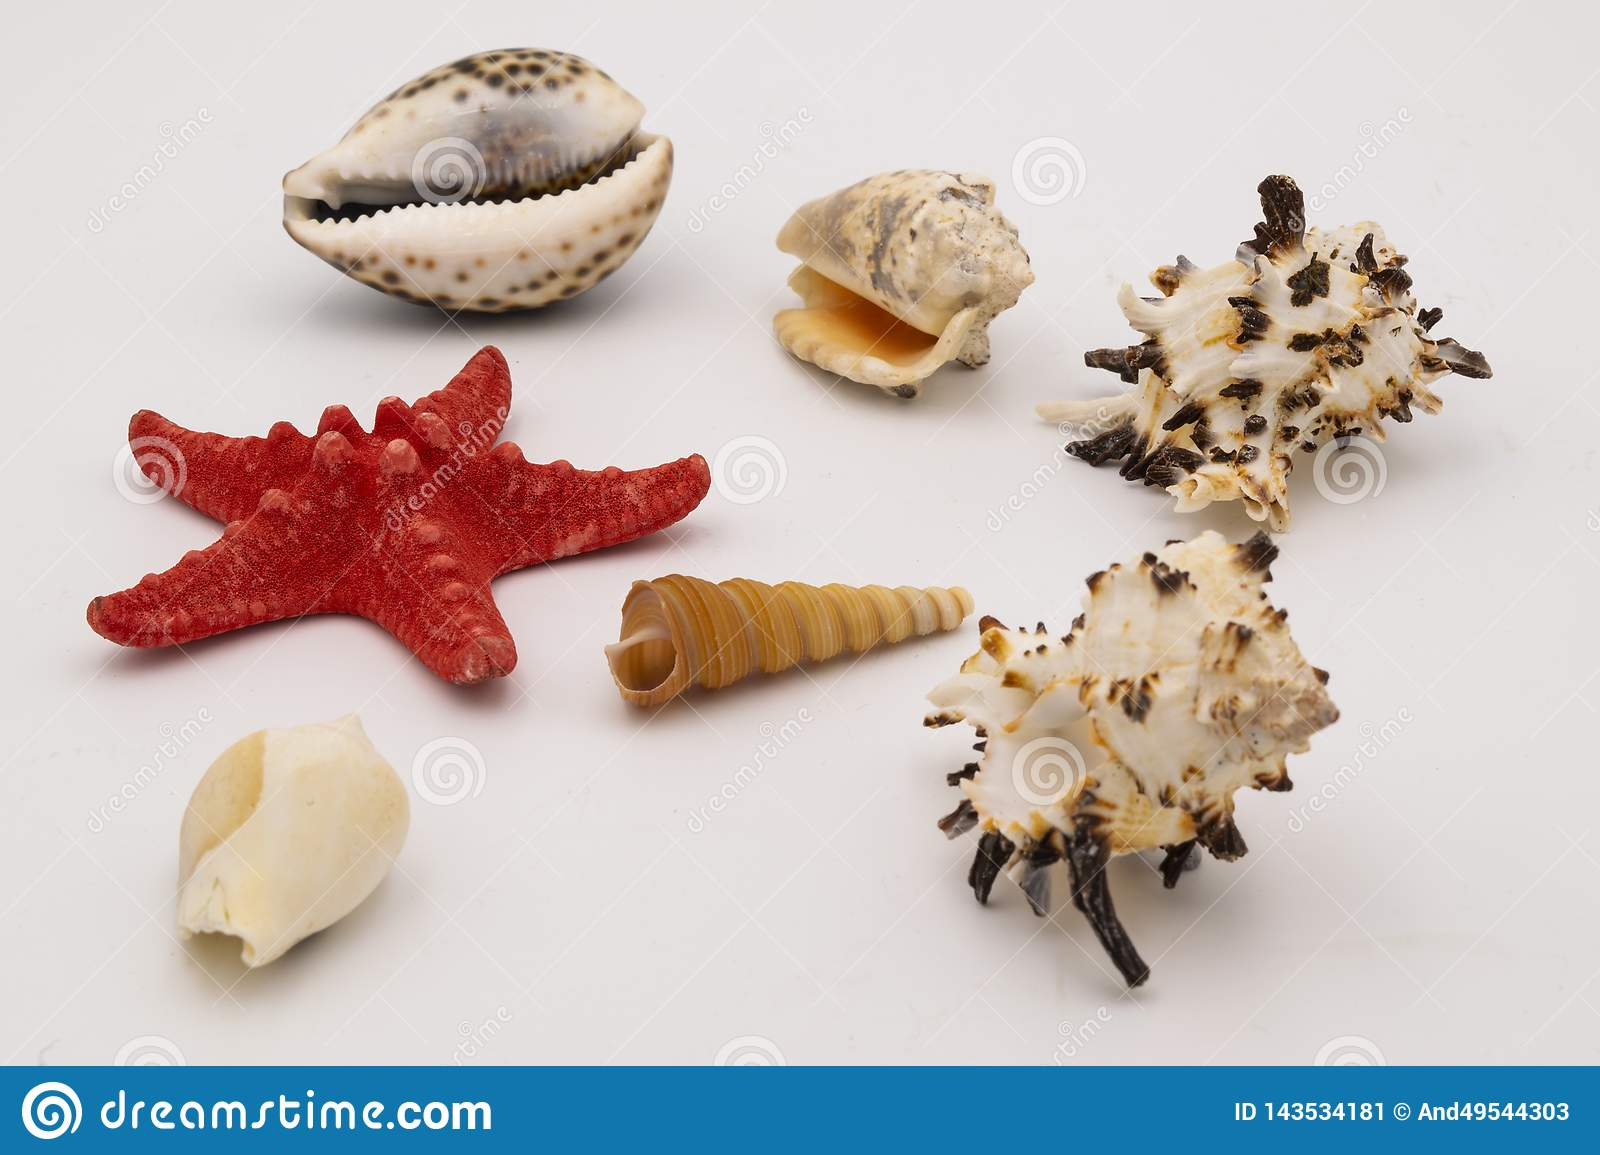 Starfish and seashells on the white table.